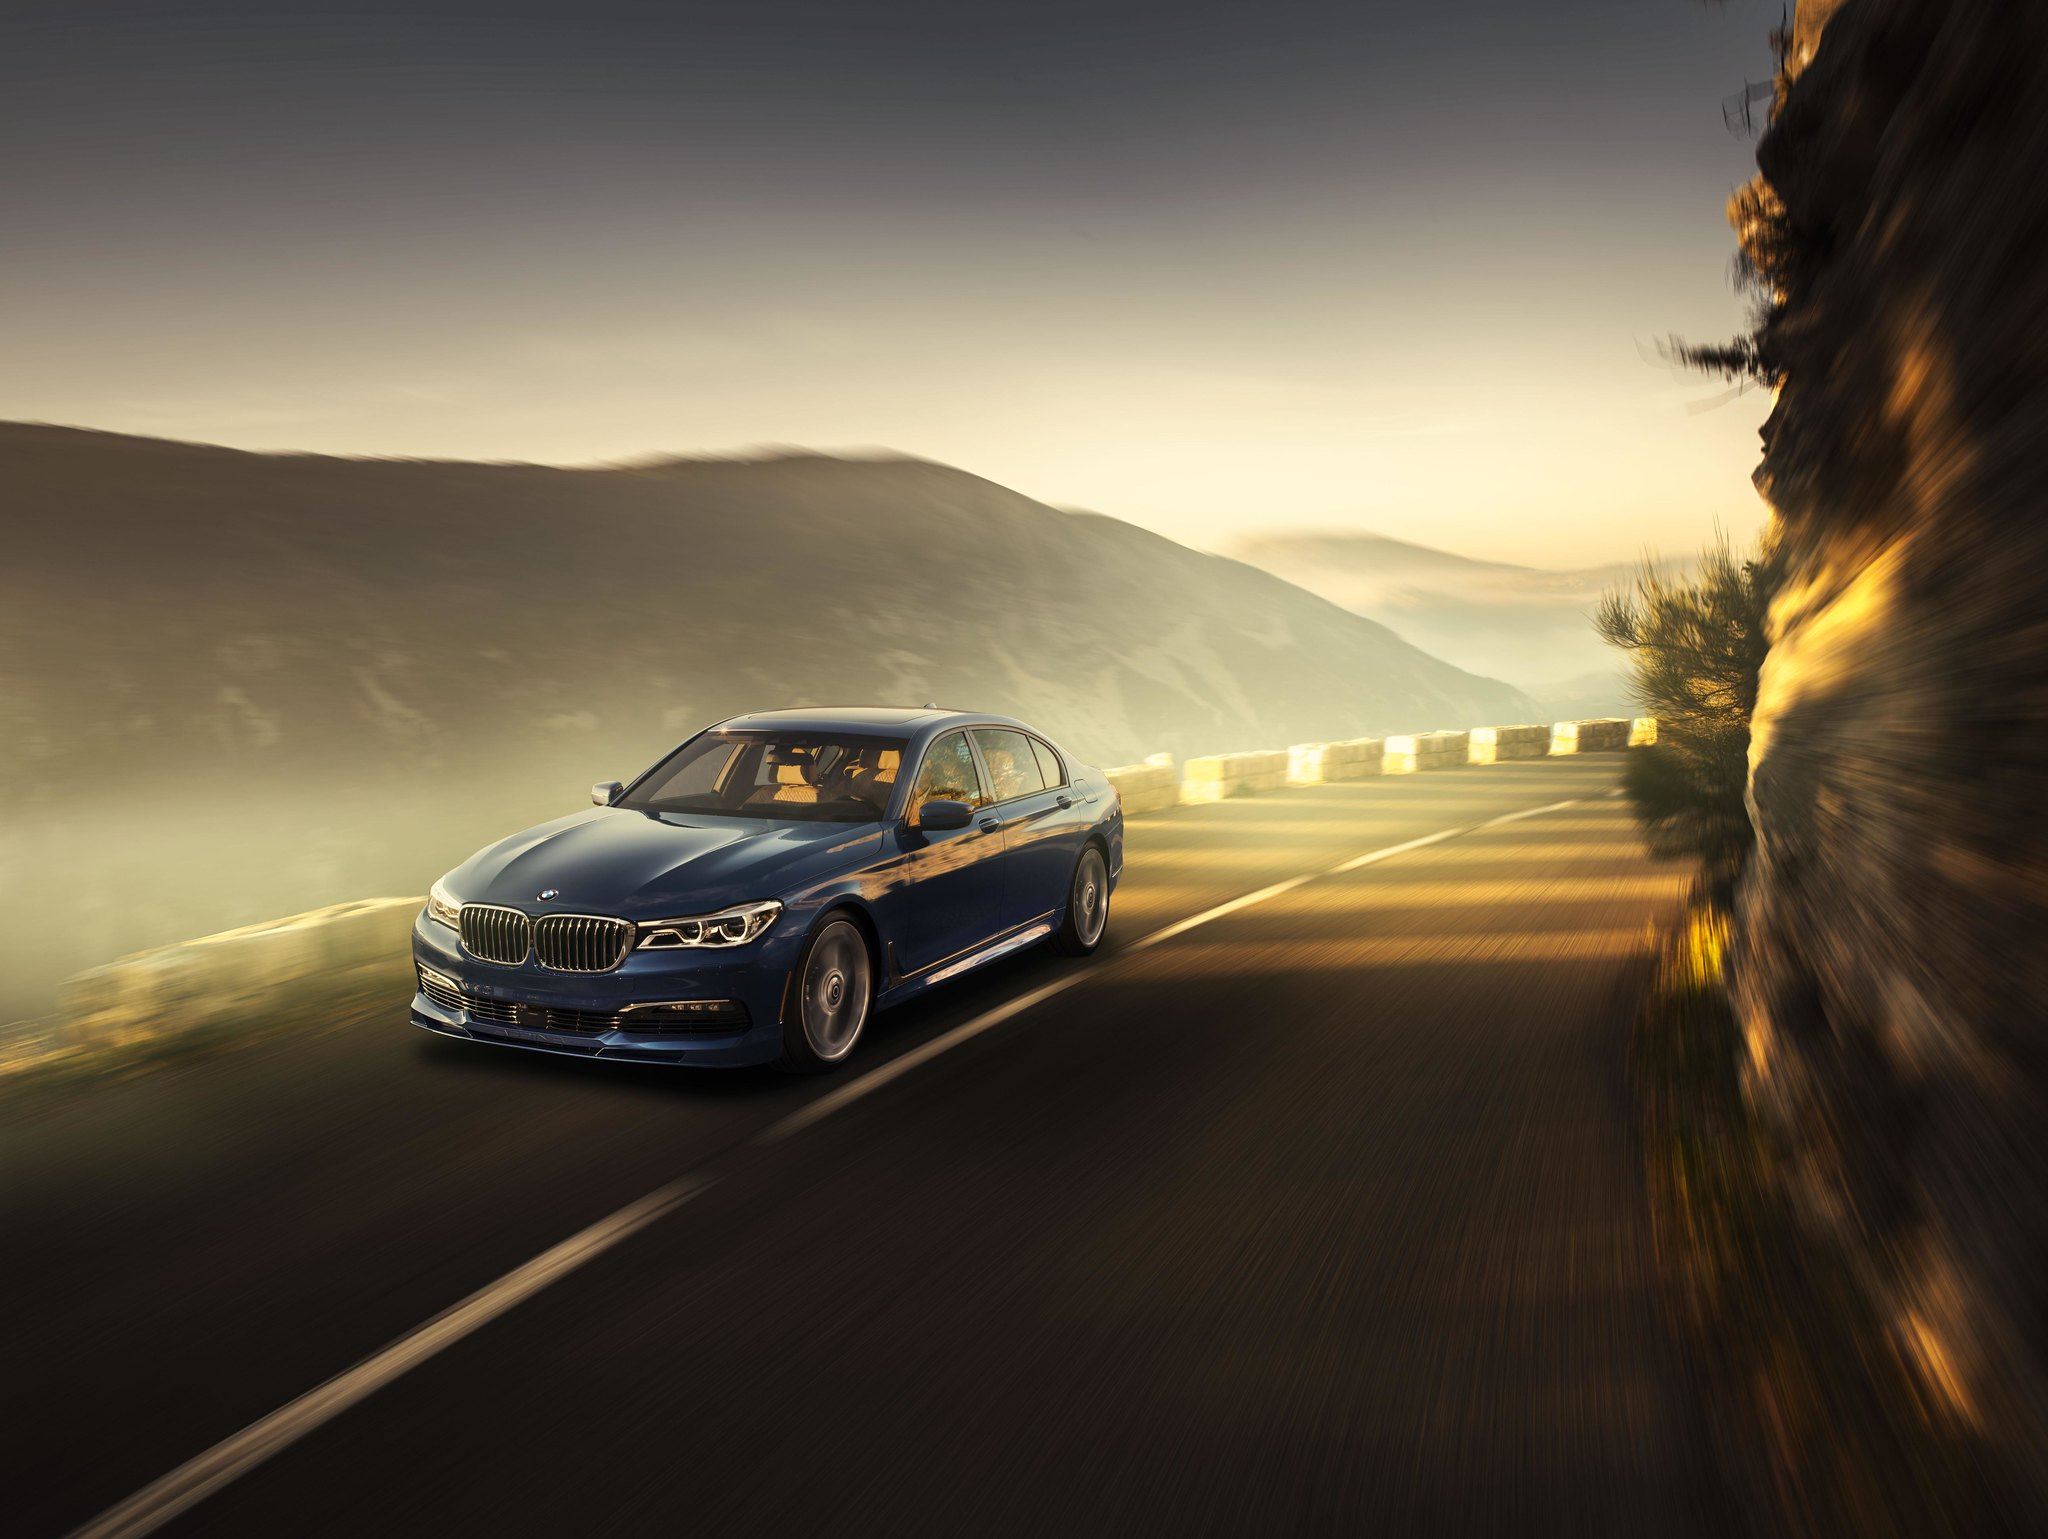 This is the 2017 BMW ALPINA B7 xDrive